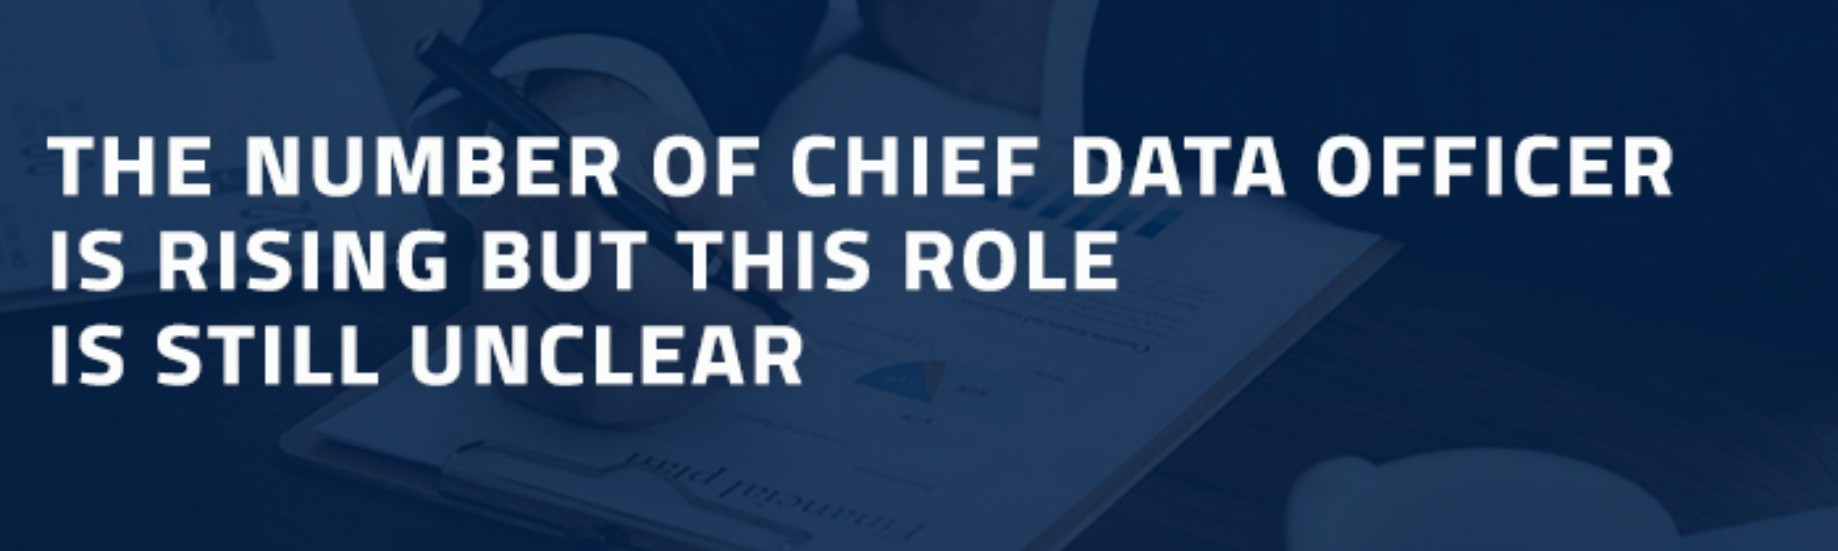 The Number of Chief Data Officer is Rising But This Role is Still Unclear